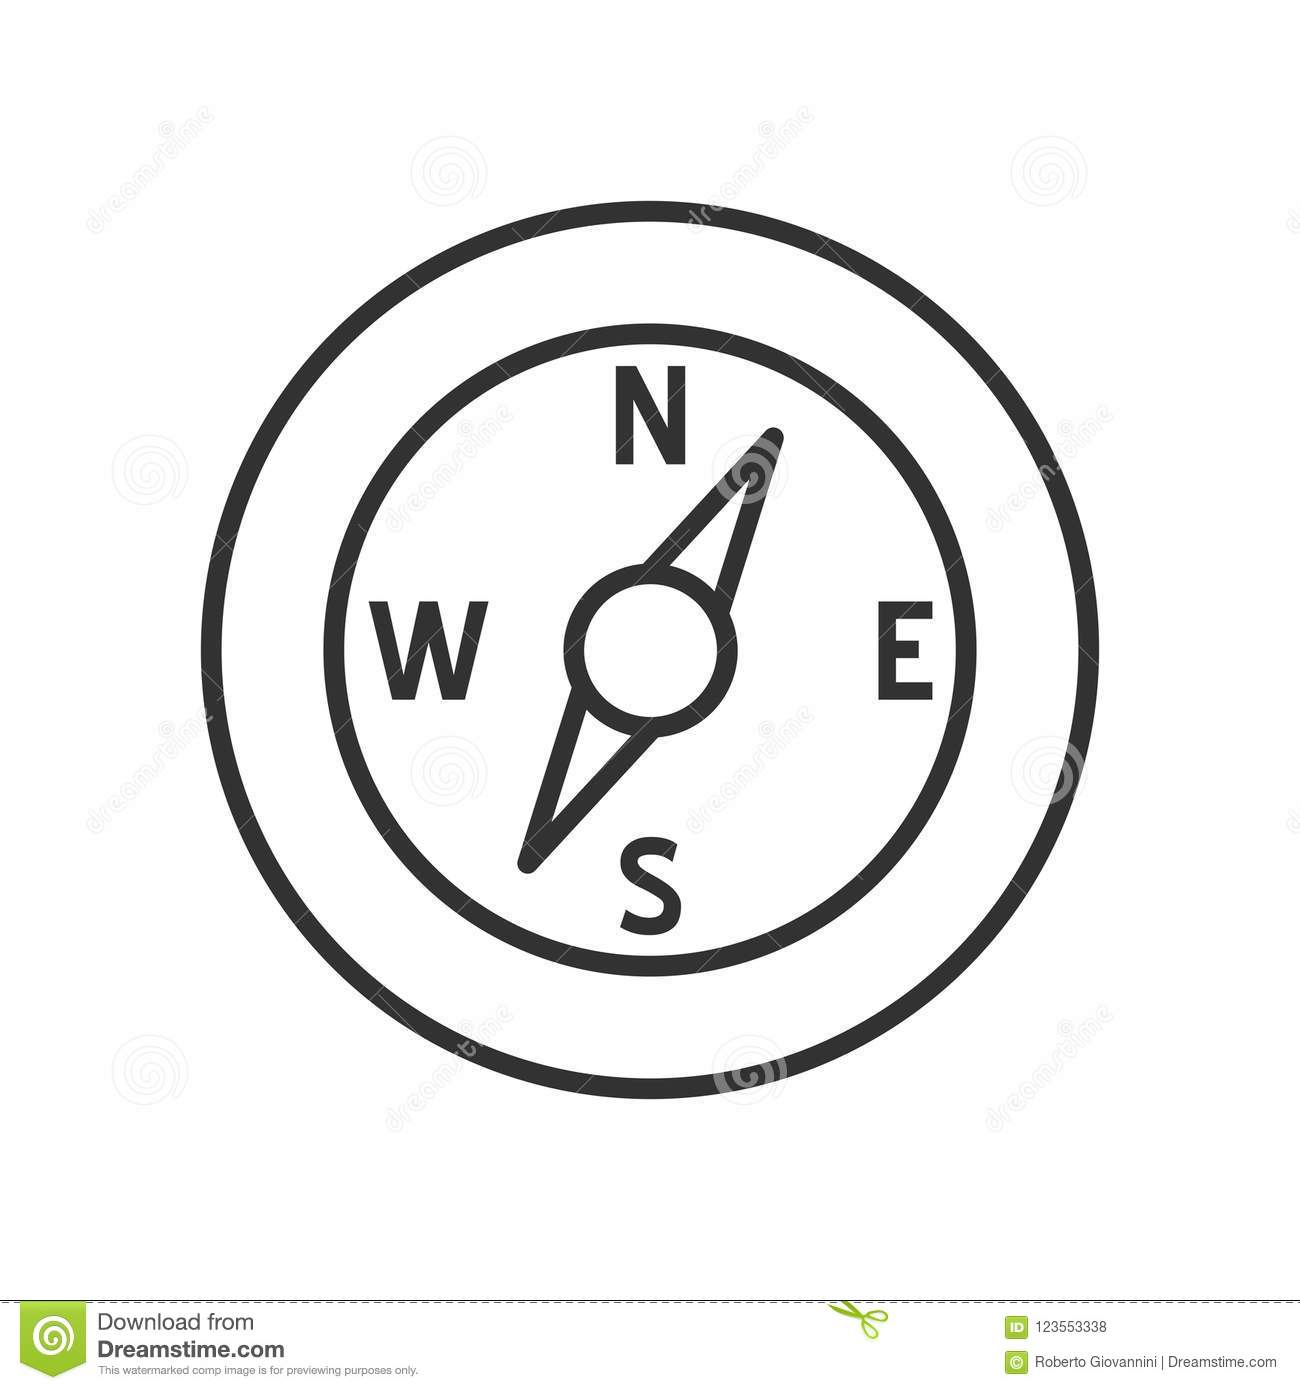 Compass Outline Flat Icon on White